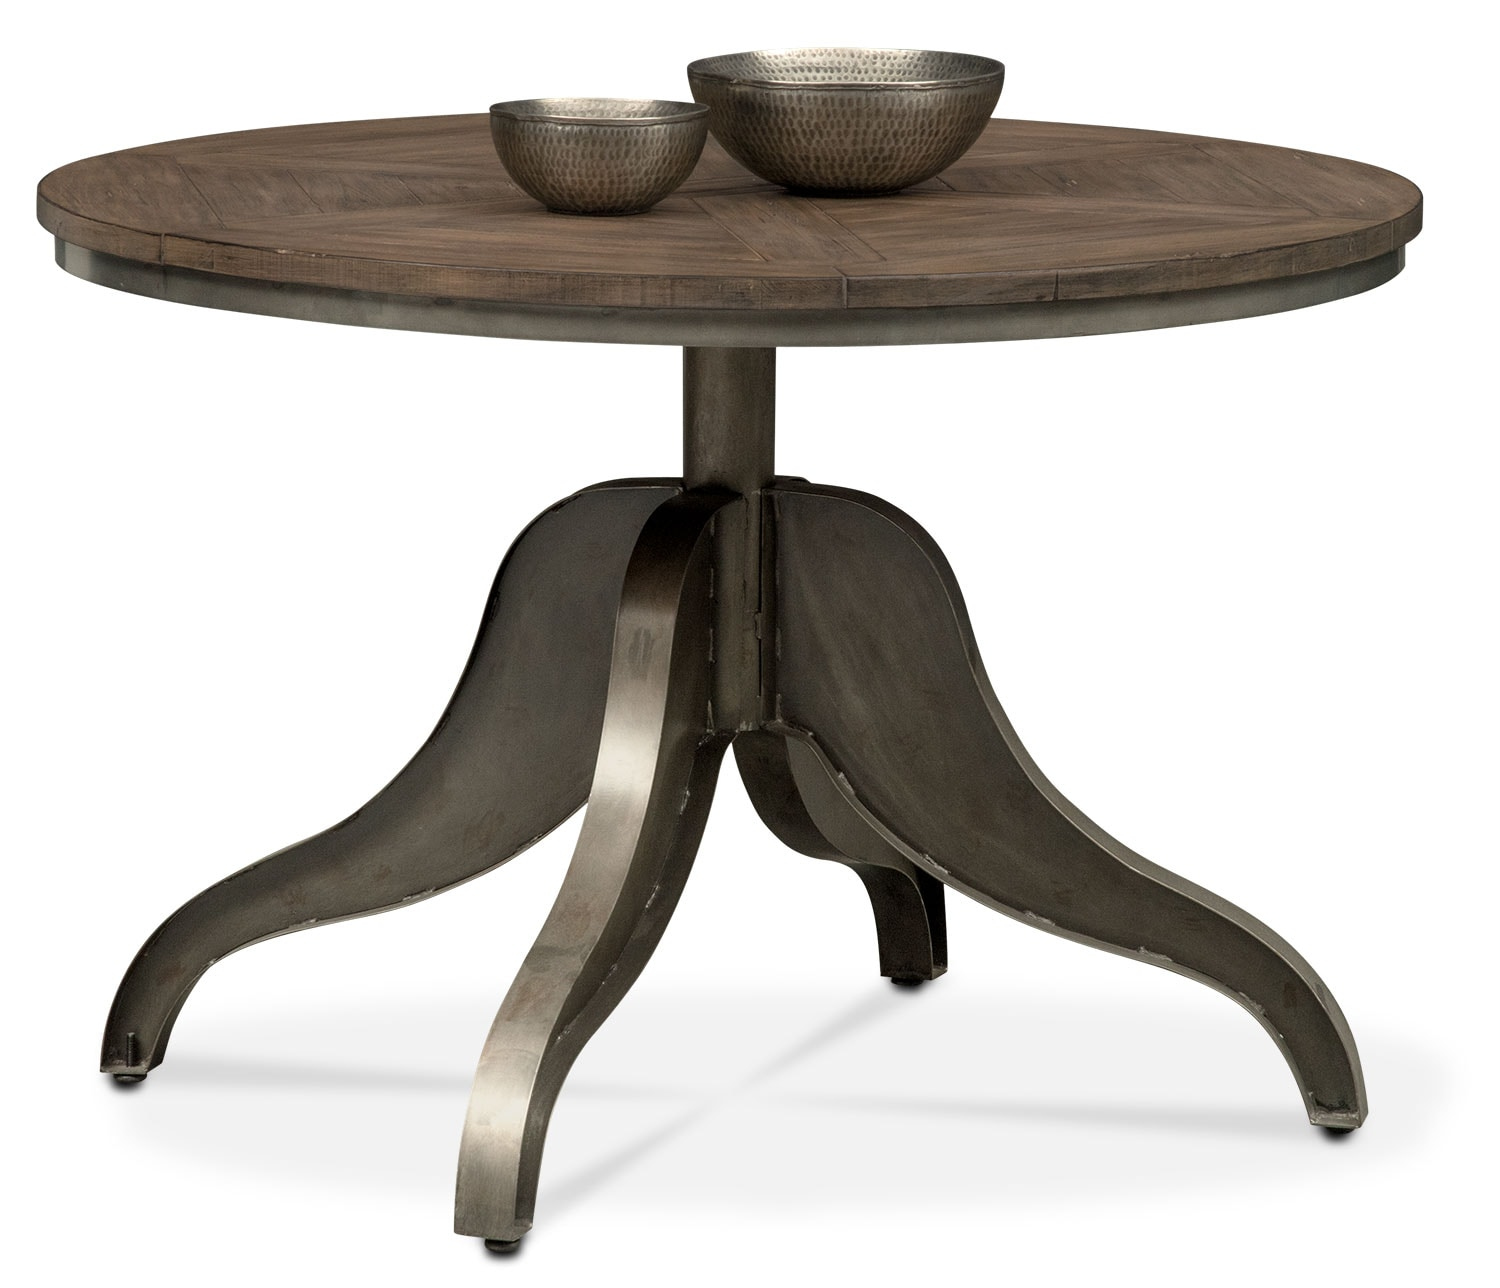 Dining Room Furniture - Cromwell Adjustable Dining Table - Distressed Wood